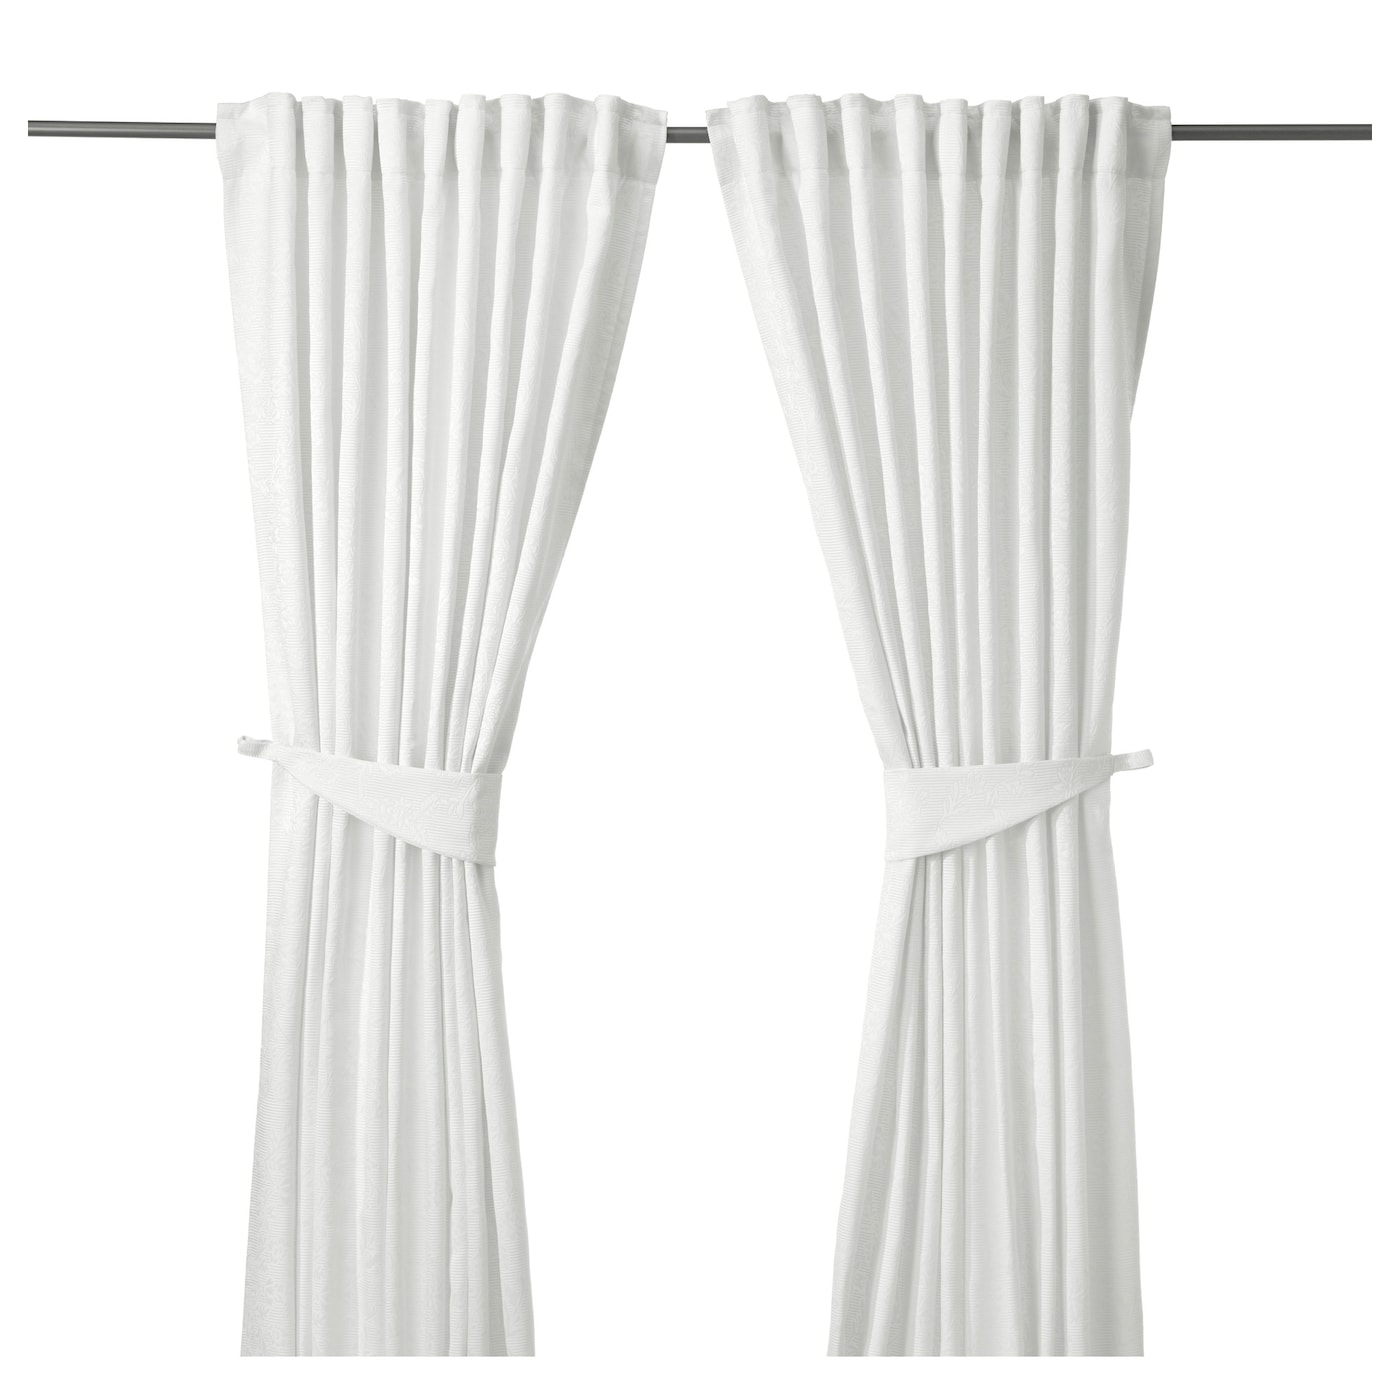 Drape Ties: BLEKVIVA Curtains With Tie-backs, 1 Pair White 145x250 Cm